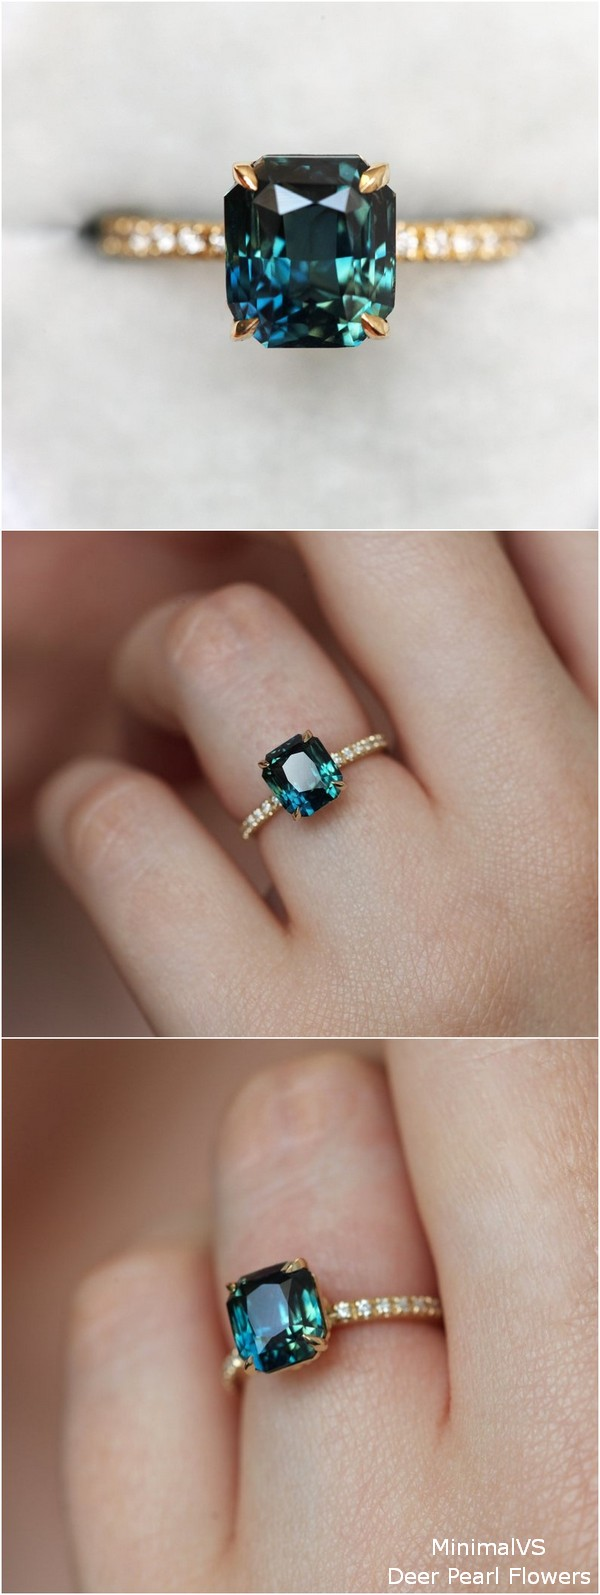 Radiant Teal Sapphire Ring with Pave Diamond Band